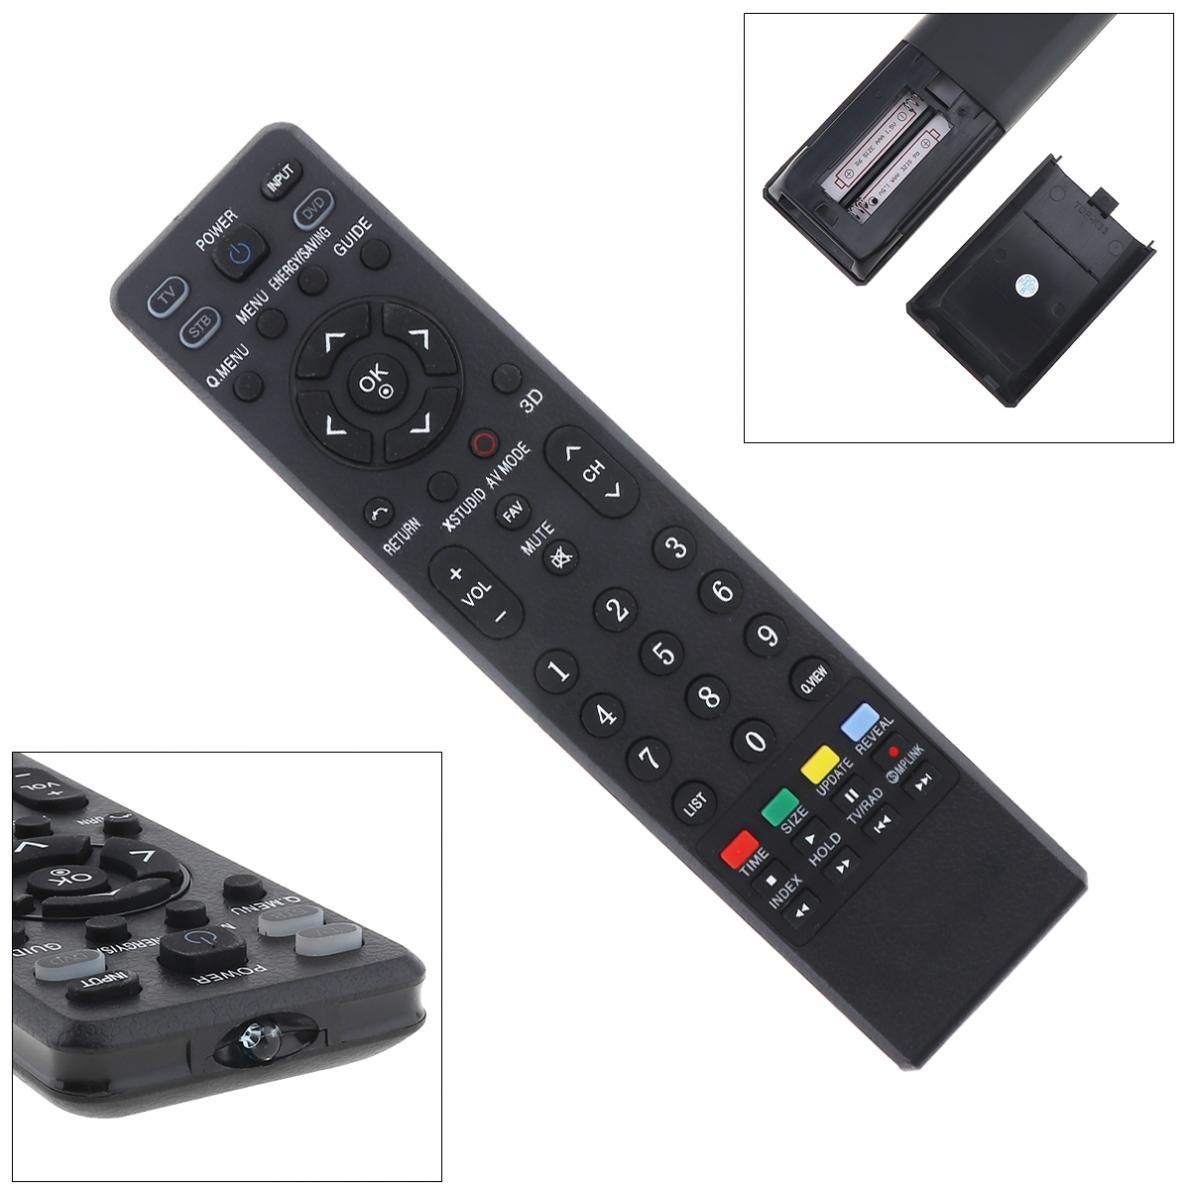 Replacement Remote Controller with 10M Transmission Distance for LG TV AKB73615327 / MKJ61842705 / AKB73275615 / MKJ42519609